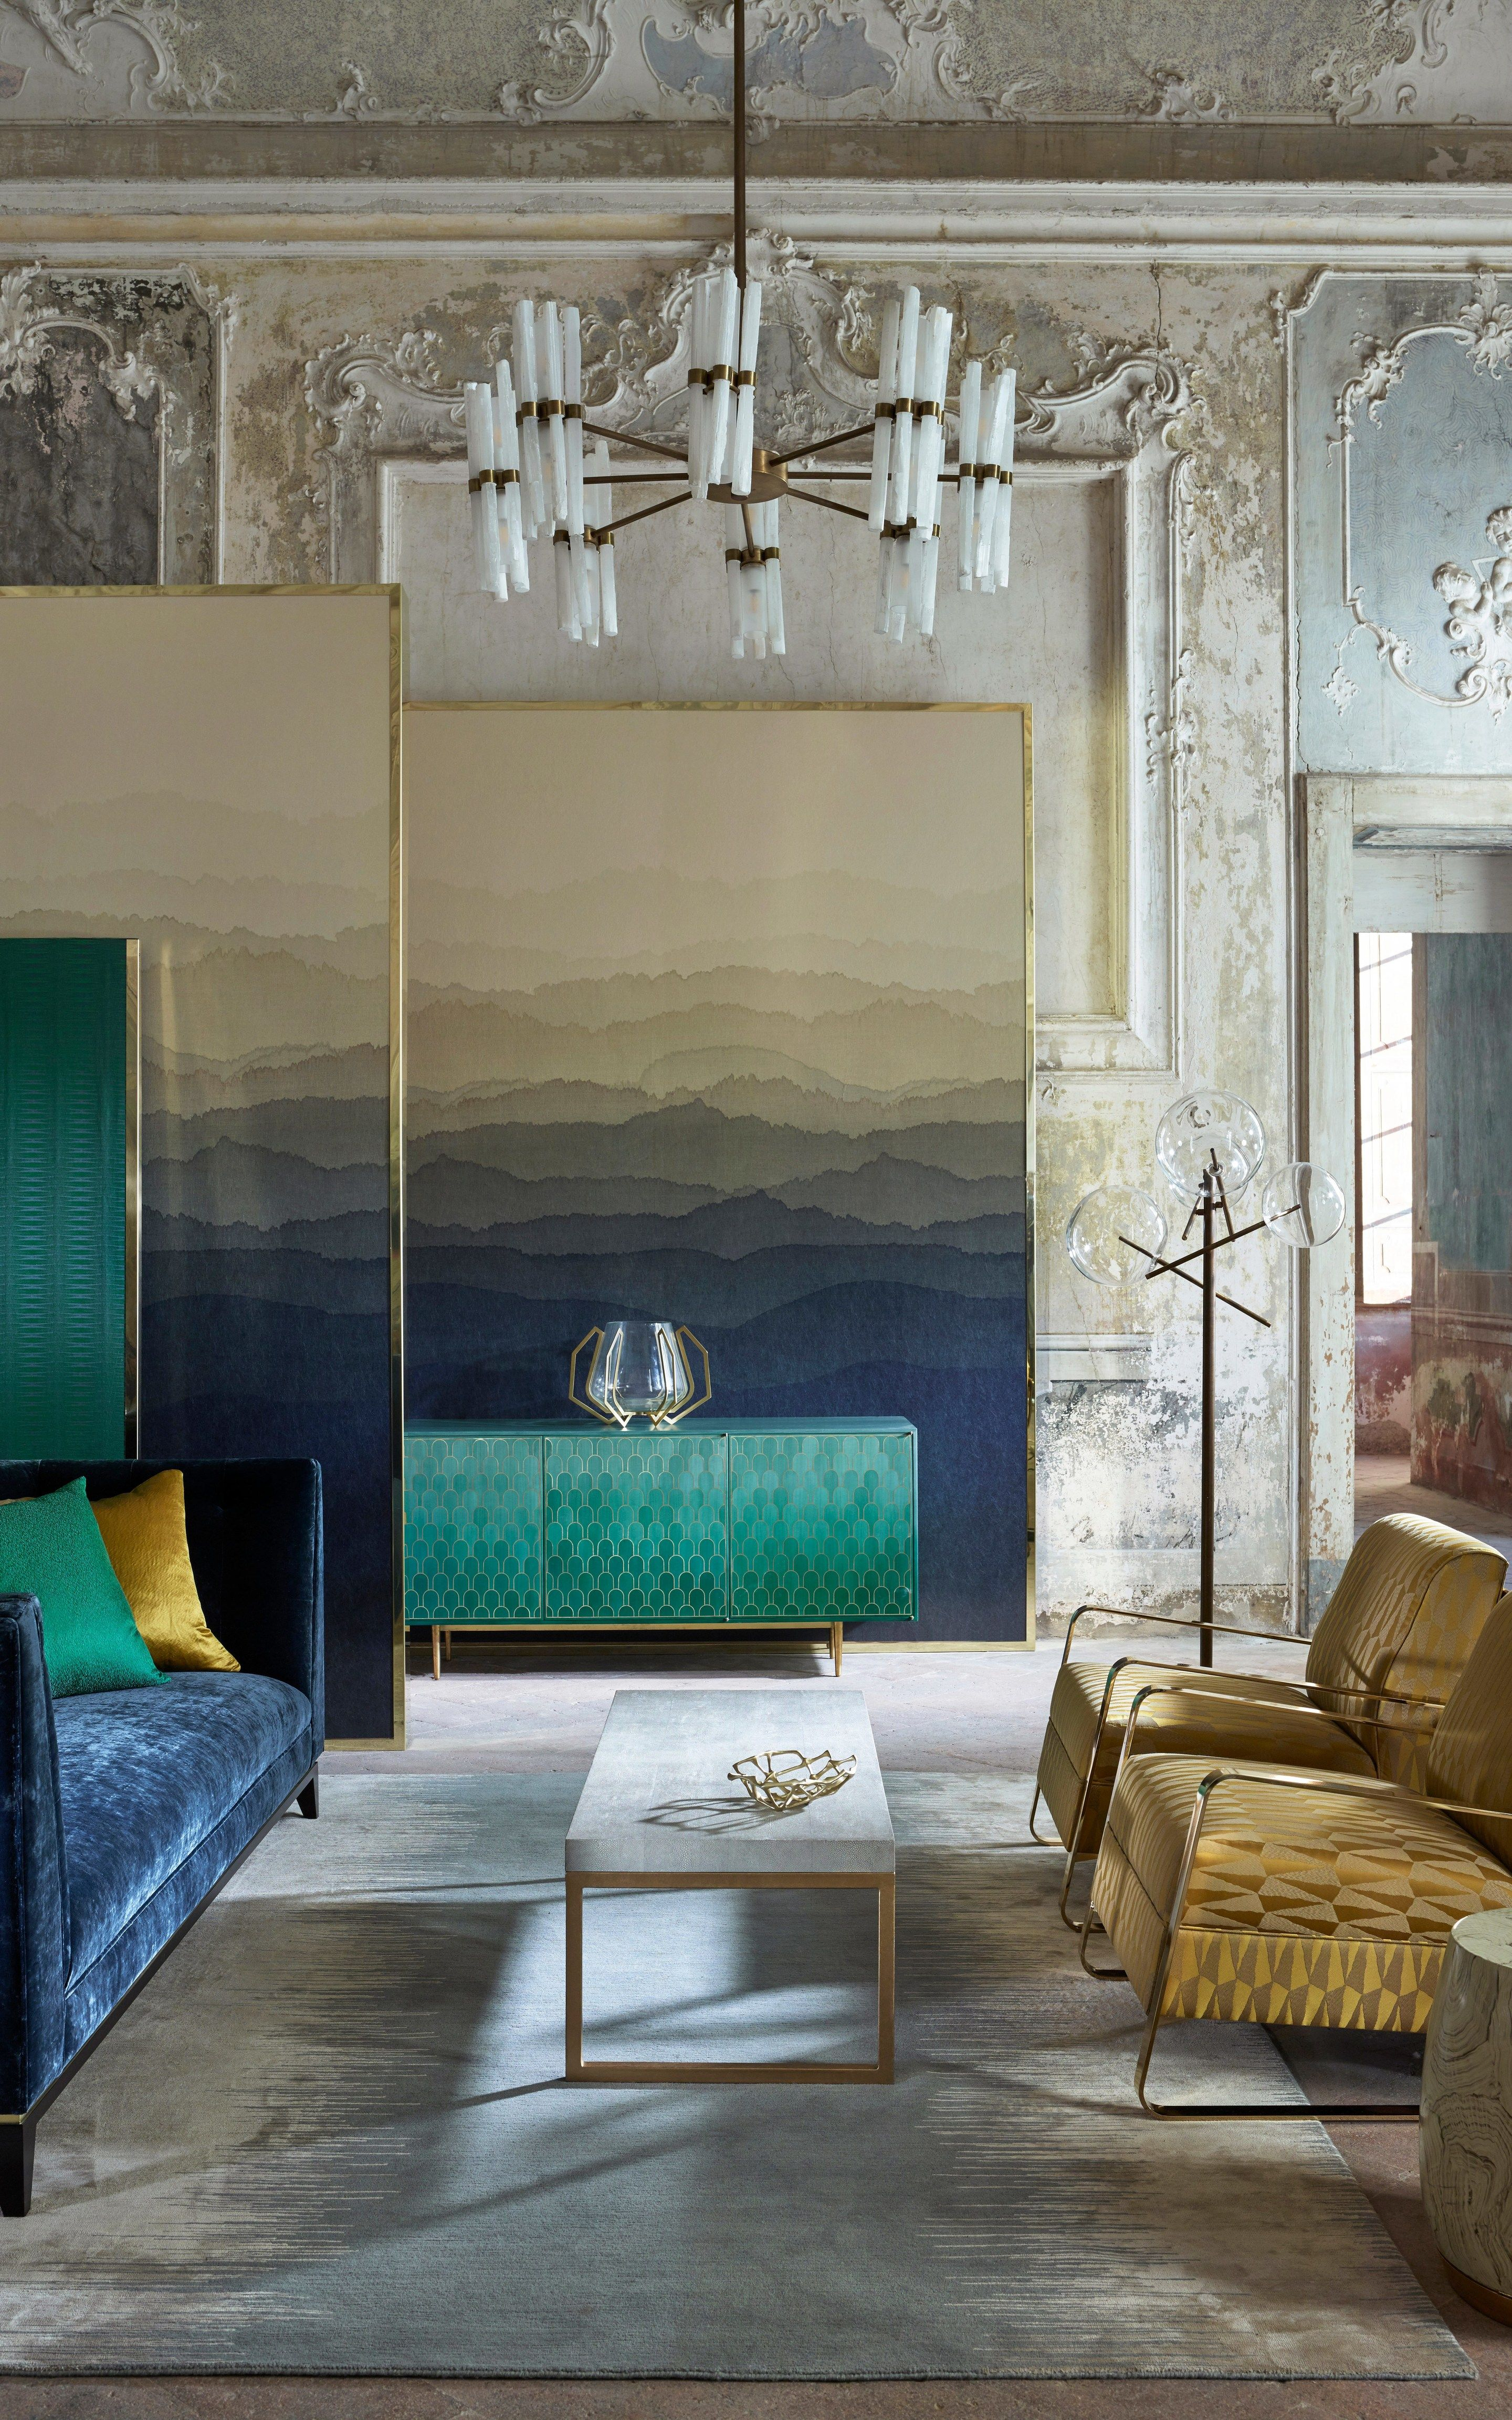 Trending Now The Best Gold Furniture For Your Luxury Interior Design Art Deco Living Room Interior Luxury Interior Design